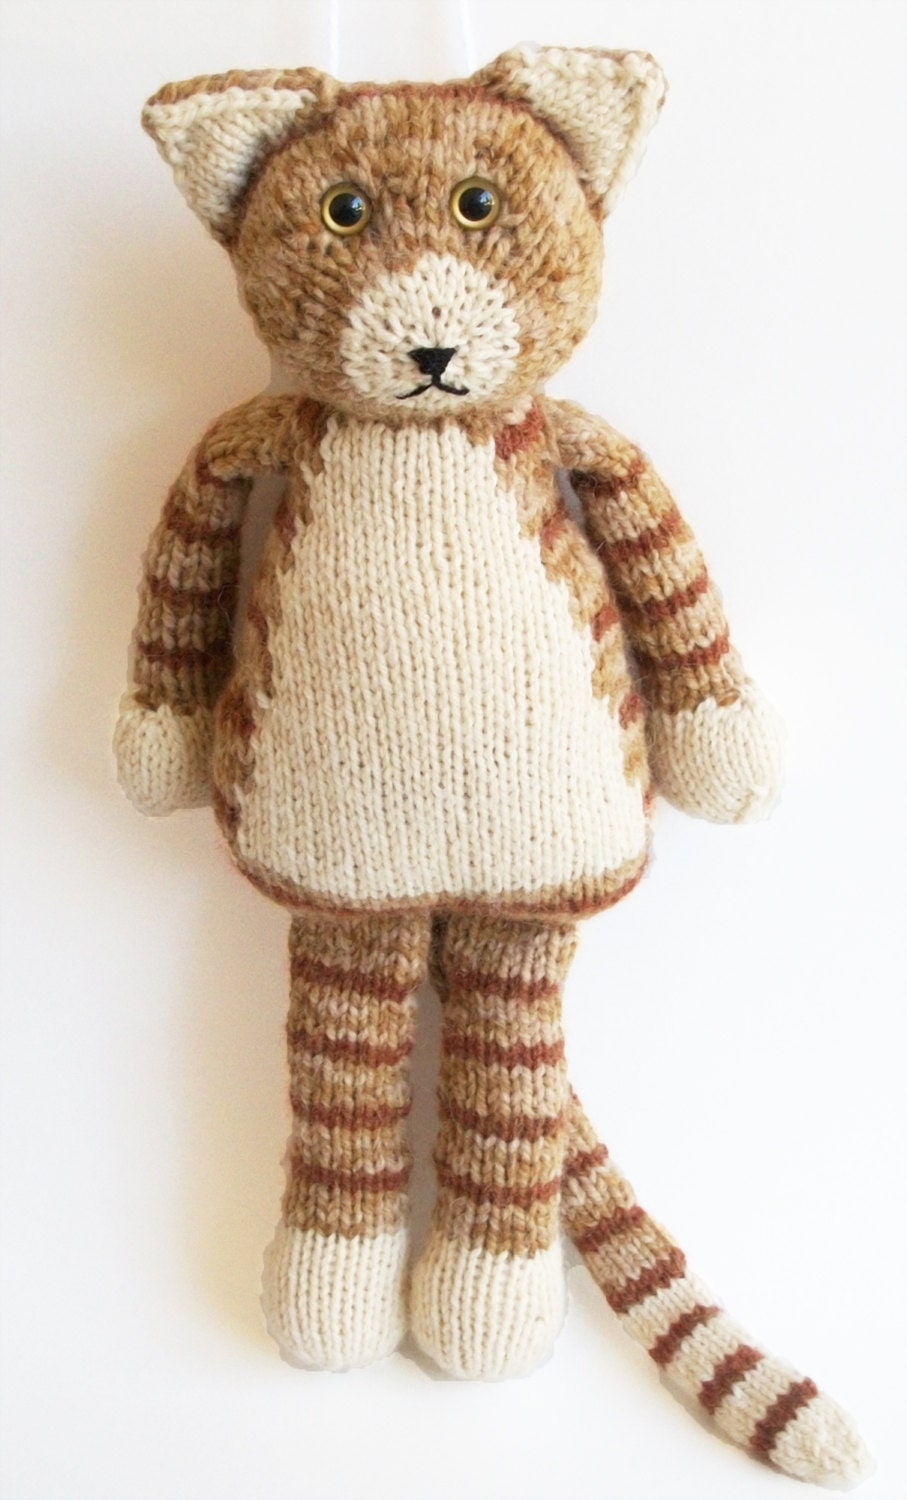 Knitting Patterns For Dogs And Cats : Items similar to Rudy Cat PDF Knitting Pattern on Etsy